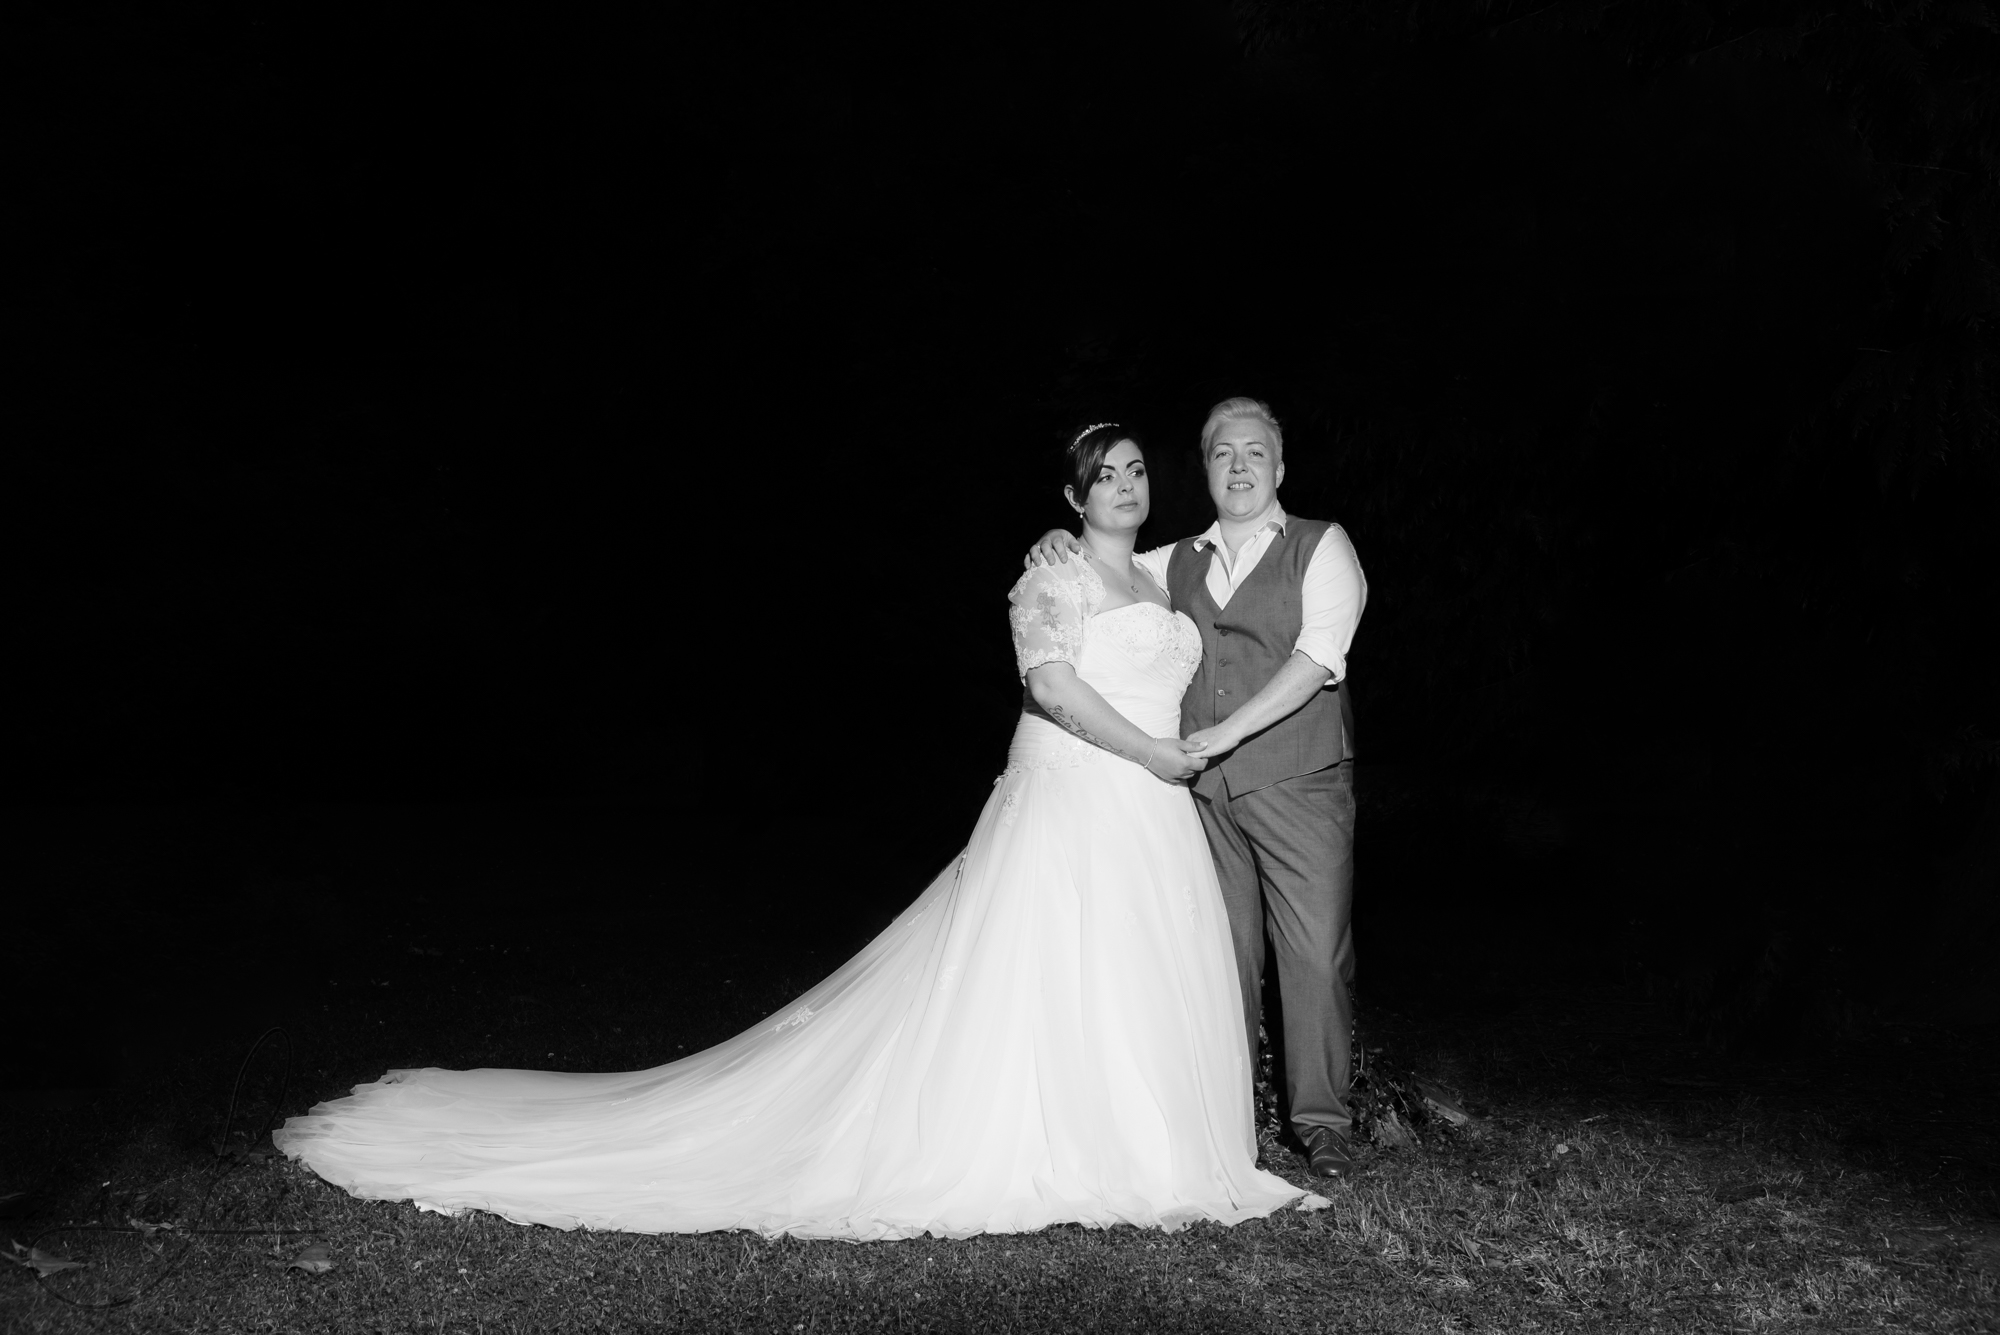 the bride and bride go outside for their wedding photography in the dark